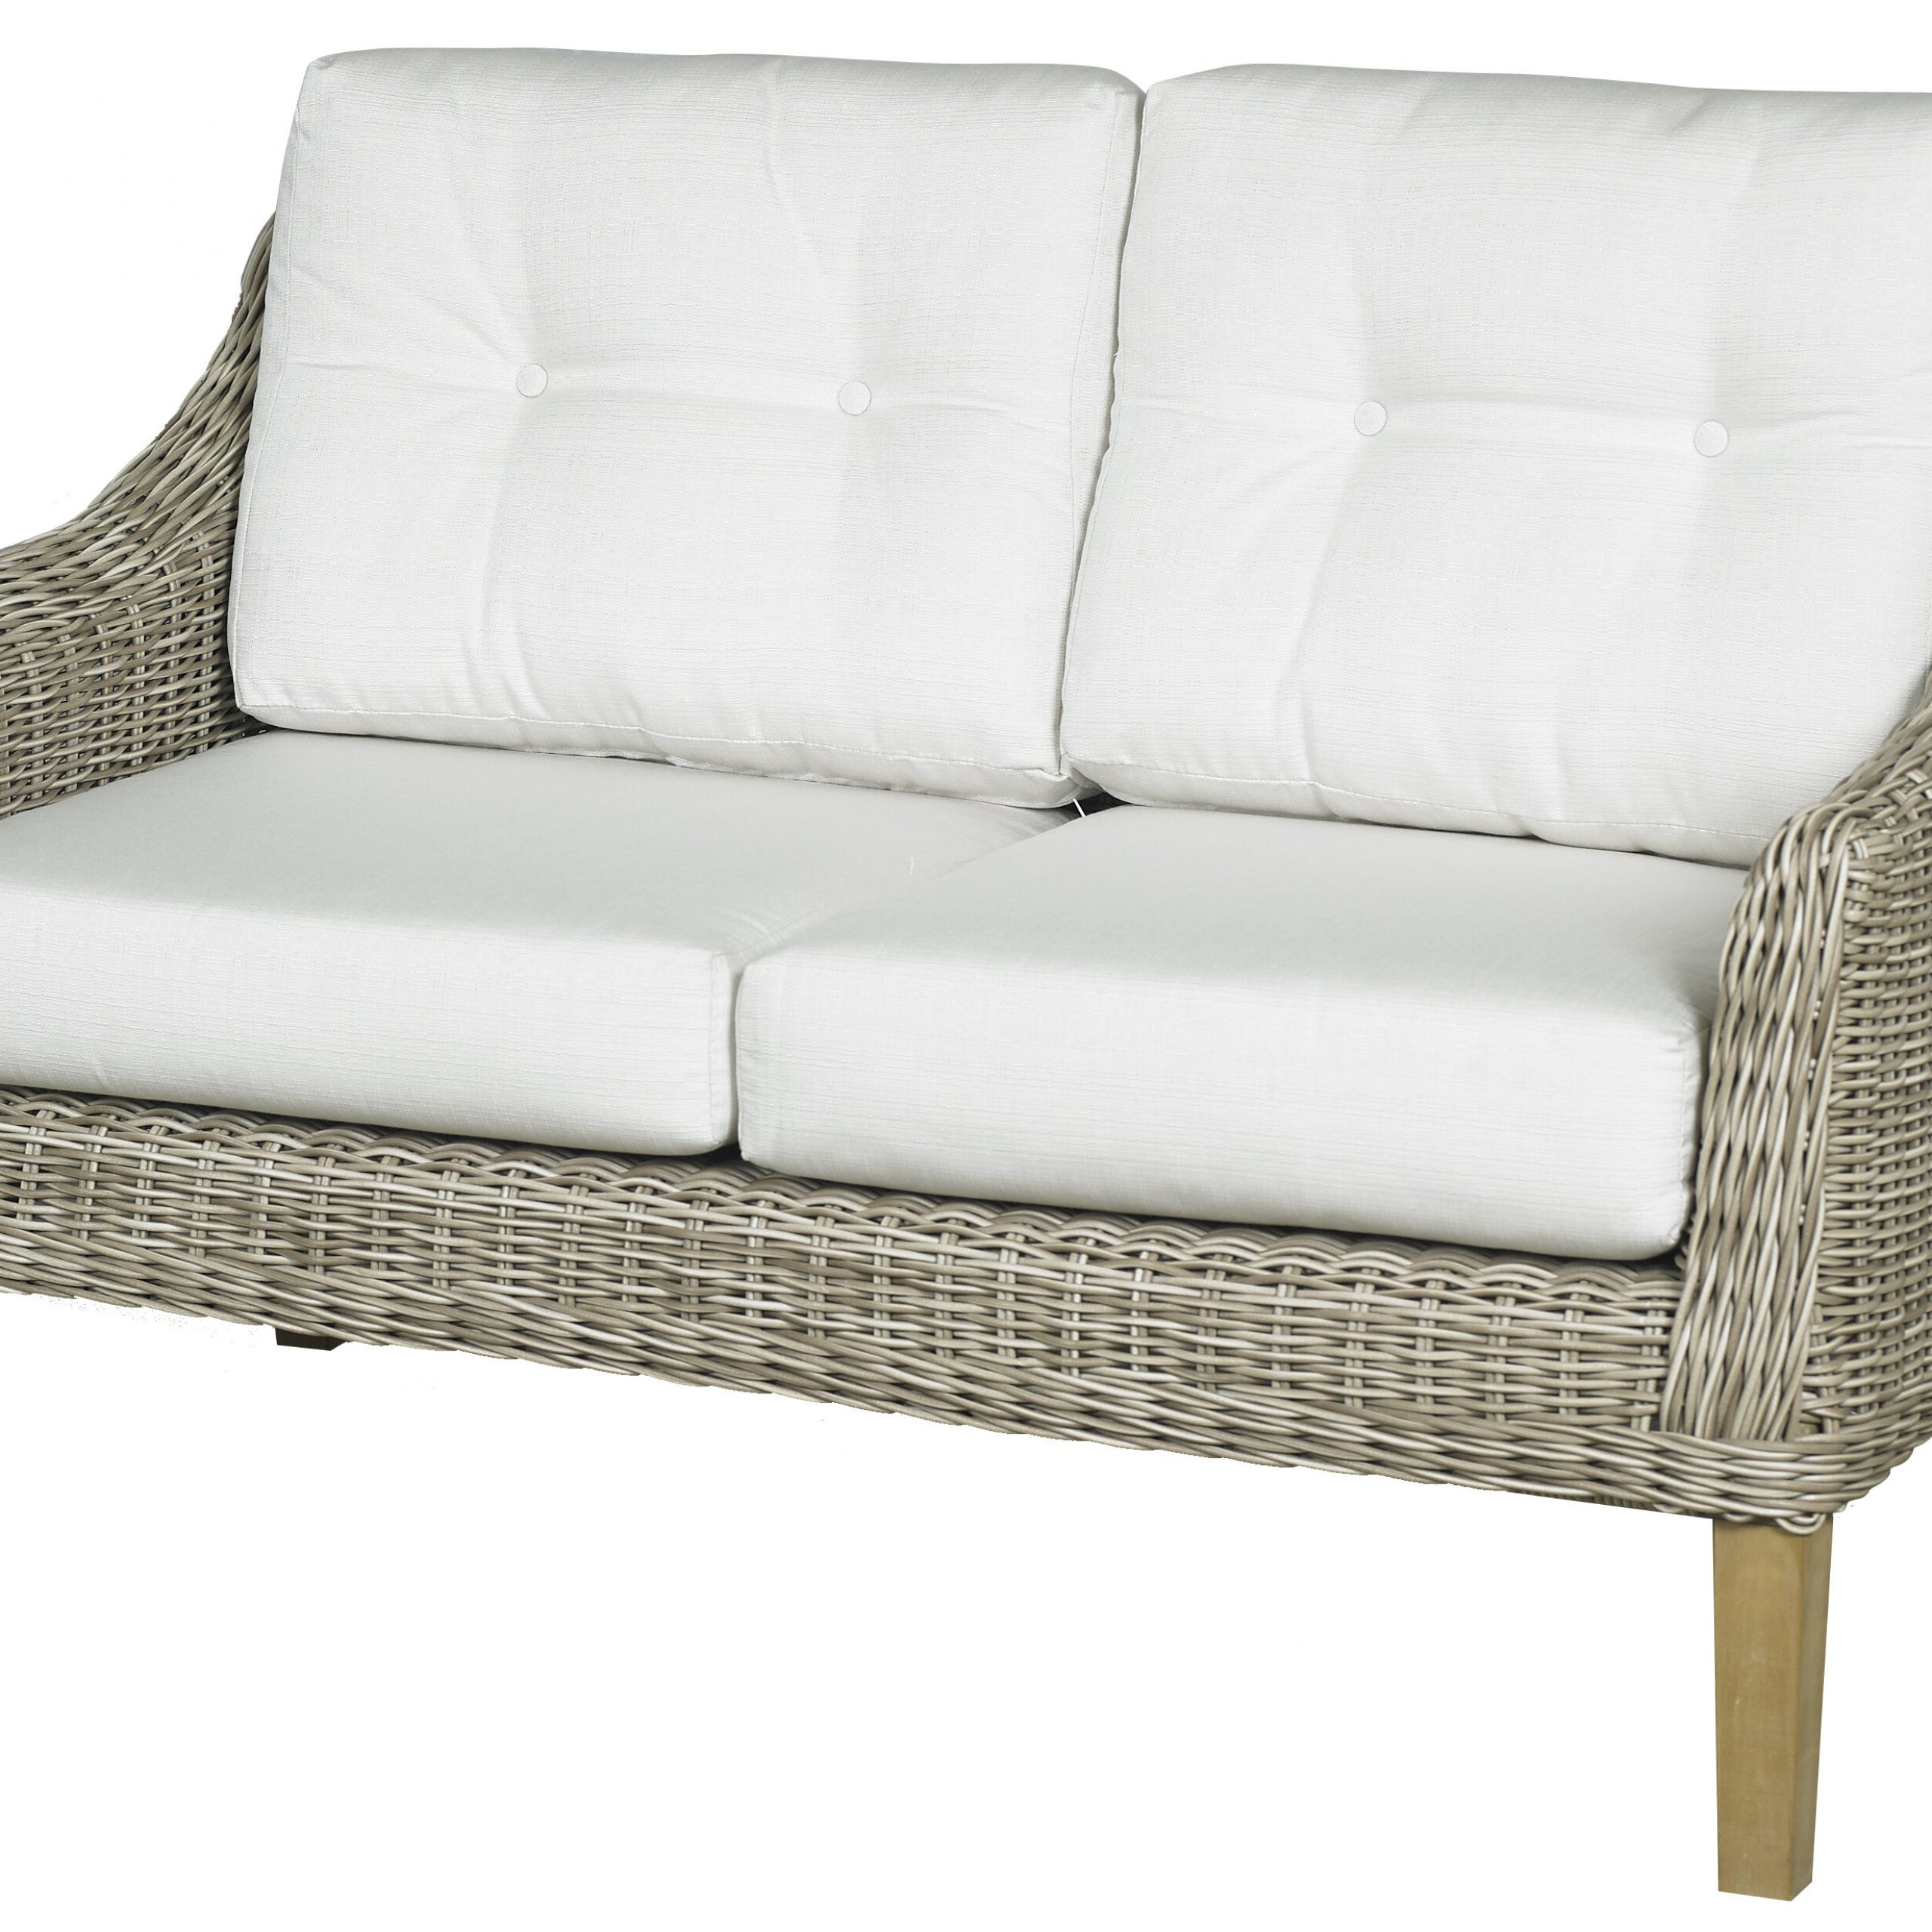 Widely Used Saleem Loveseats With Cushions Pertaining To Carlisle Loveseat With Cushions (View 25 of 25)